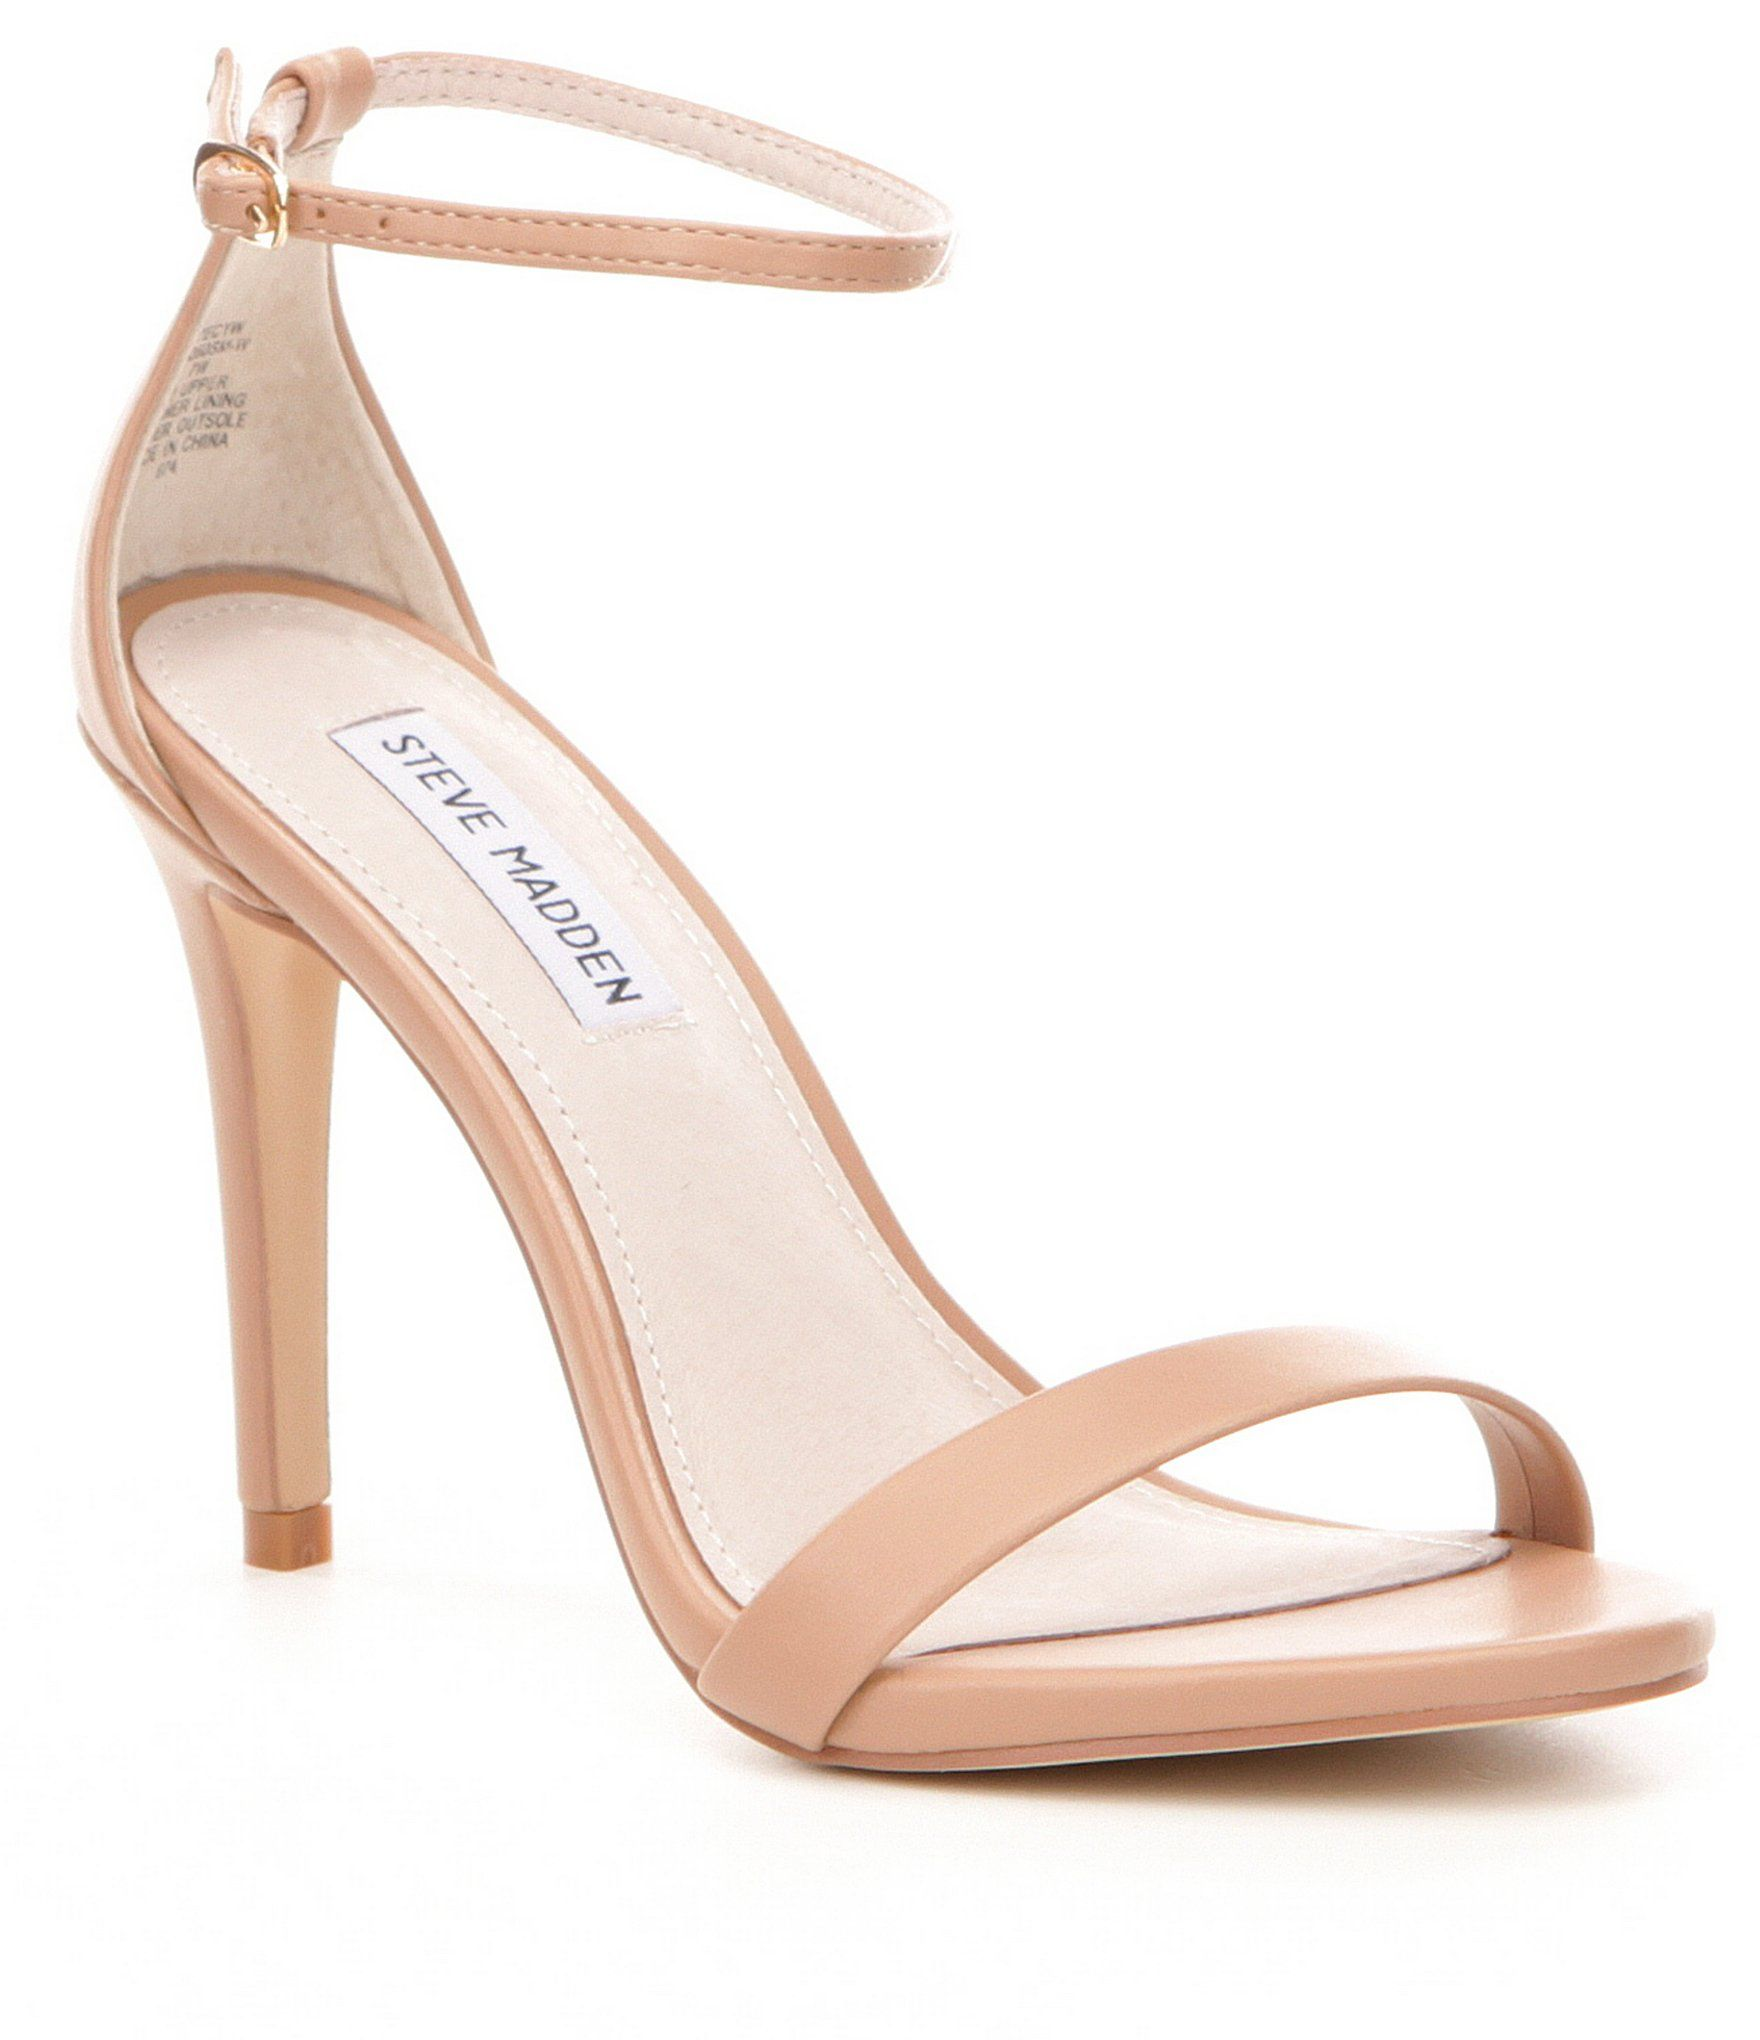 758cce654ad Shop for Steve Madden Stecy Ankle-Strap Dress Sandals at Dillards ...